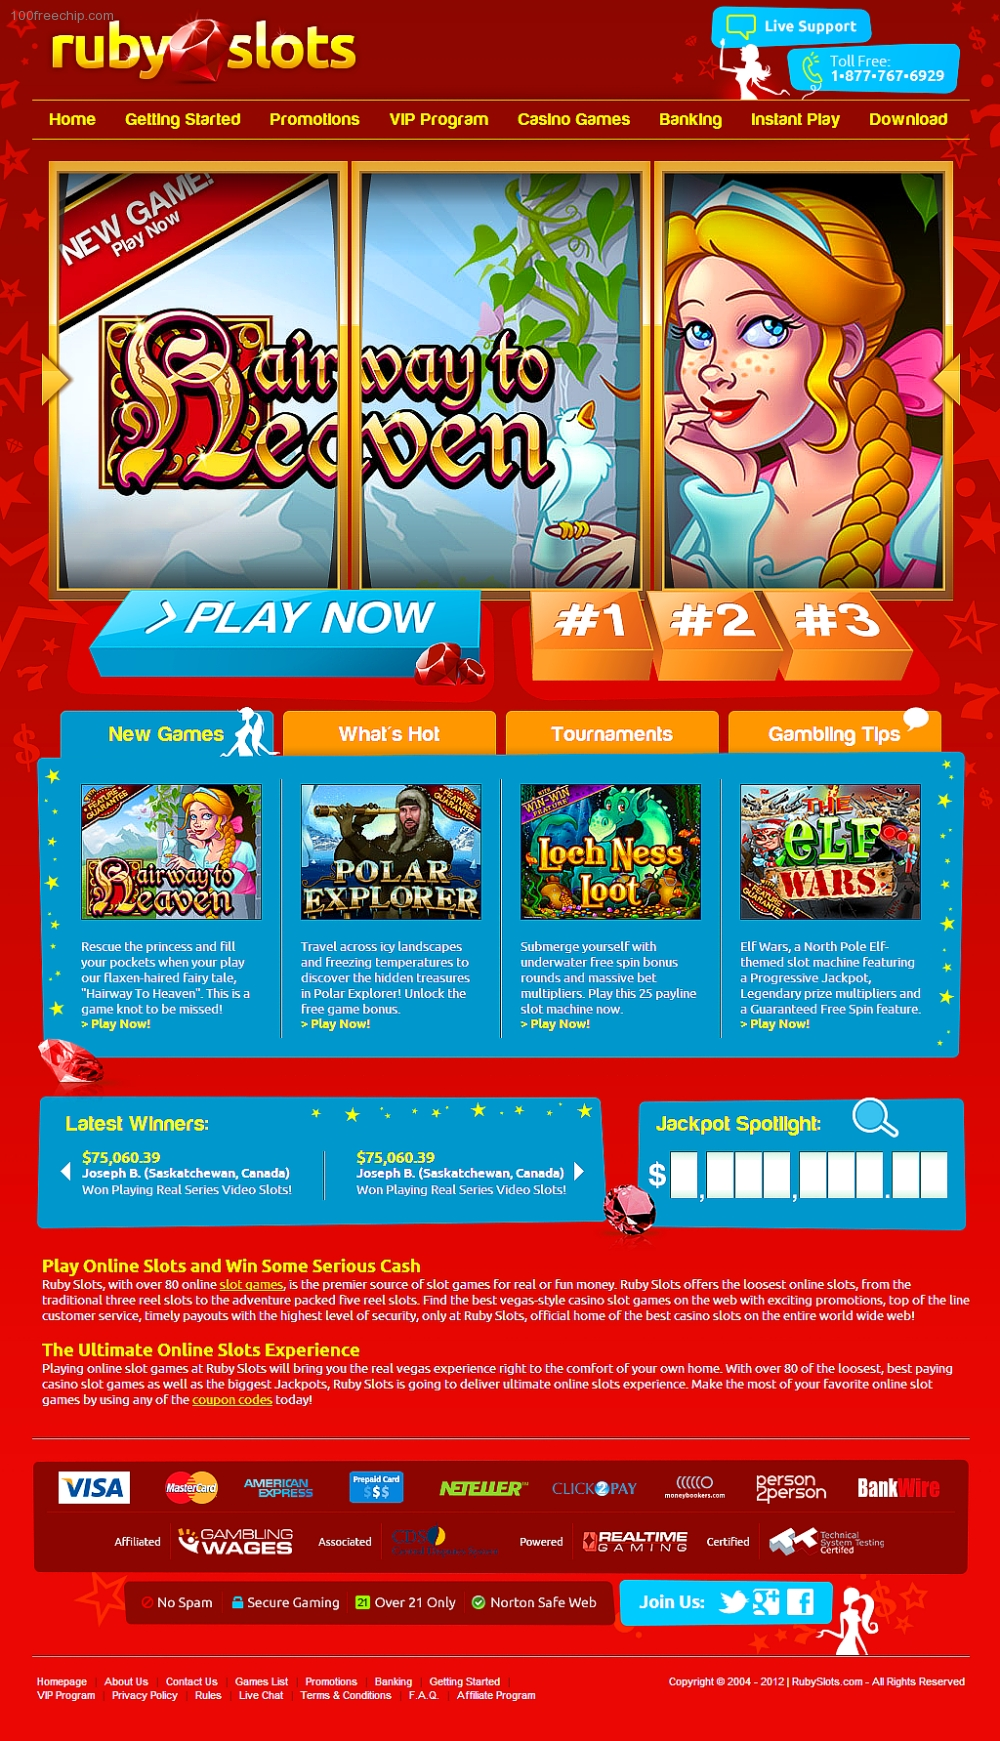 ruby slots casino $200 no deposit bonus codes 2019